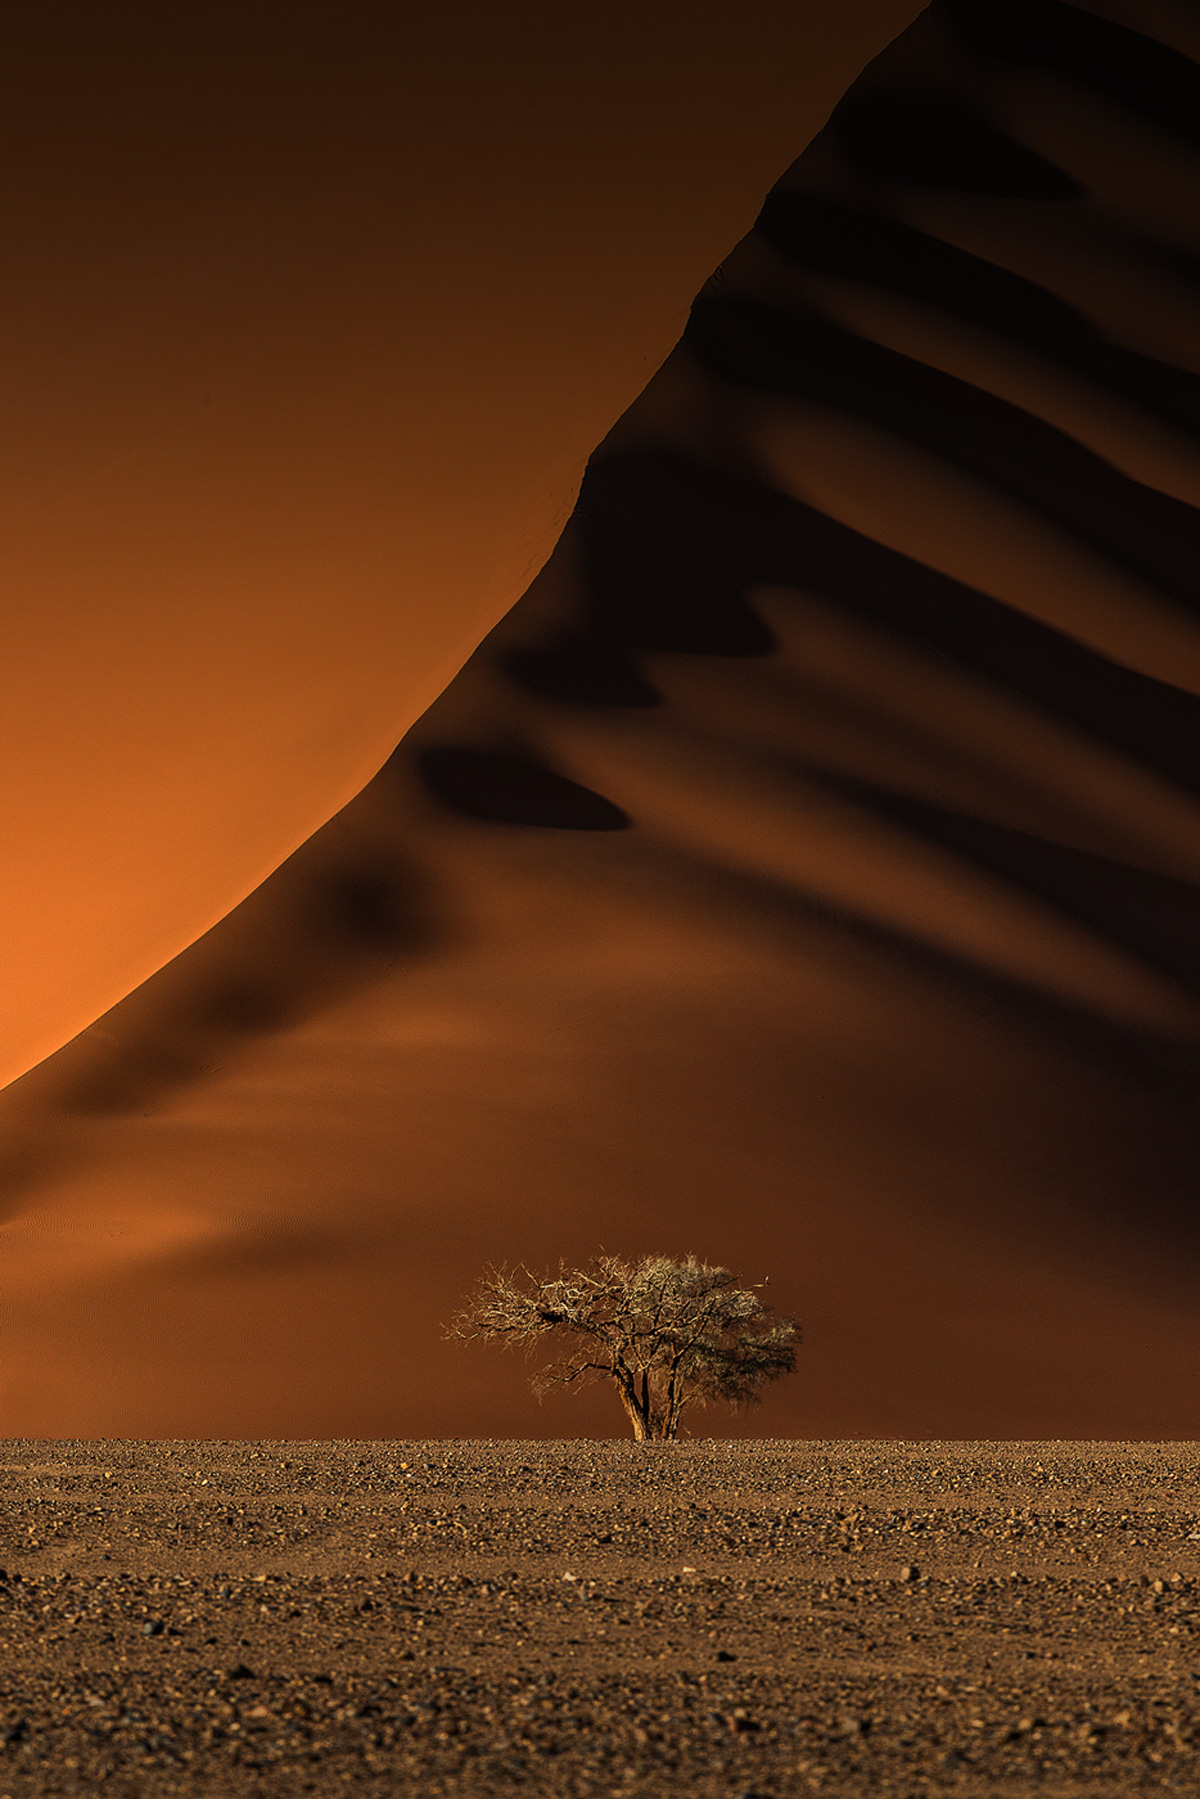 """""""Lone camelthorn"""" – a lone camelthorn tree stands proudly in front of a massive red dune in the Tsauchab Valley, Namib-Naukluft Park, Namibia © Xenia Ivanoff-Erb"""